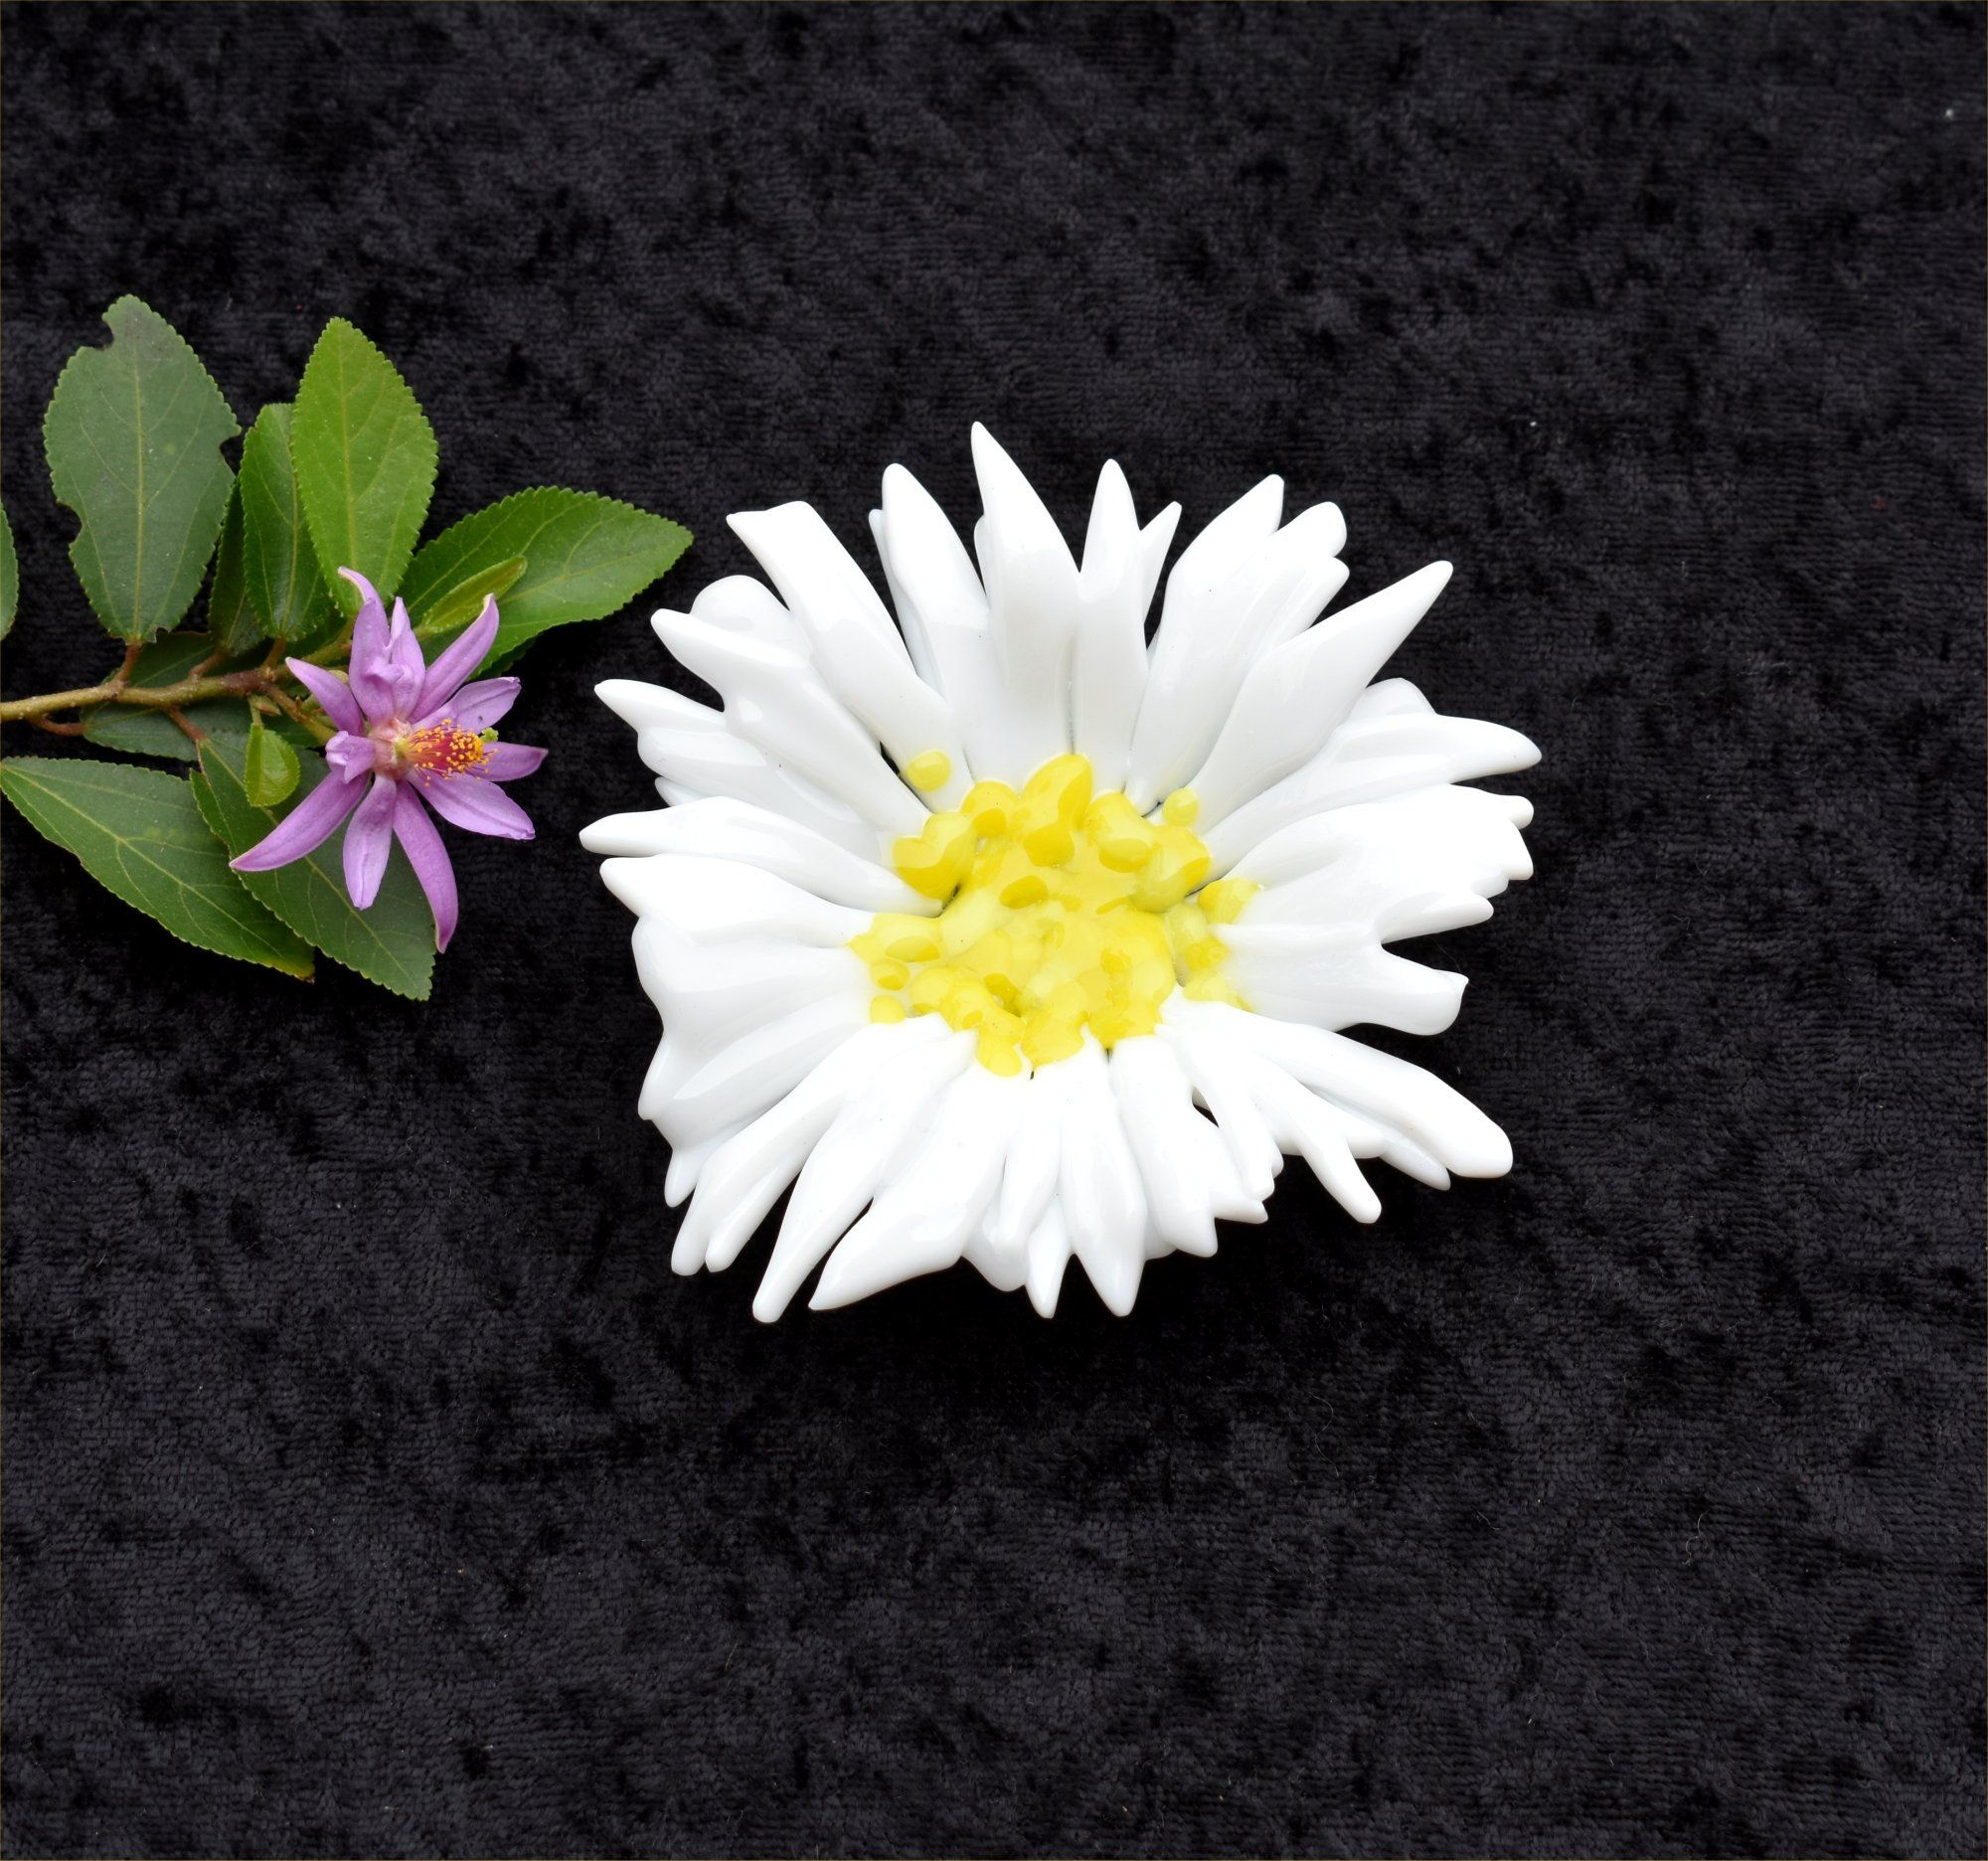 Fused Glass Daisy Dish Small White Petals Yellow Middle My Shop